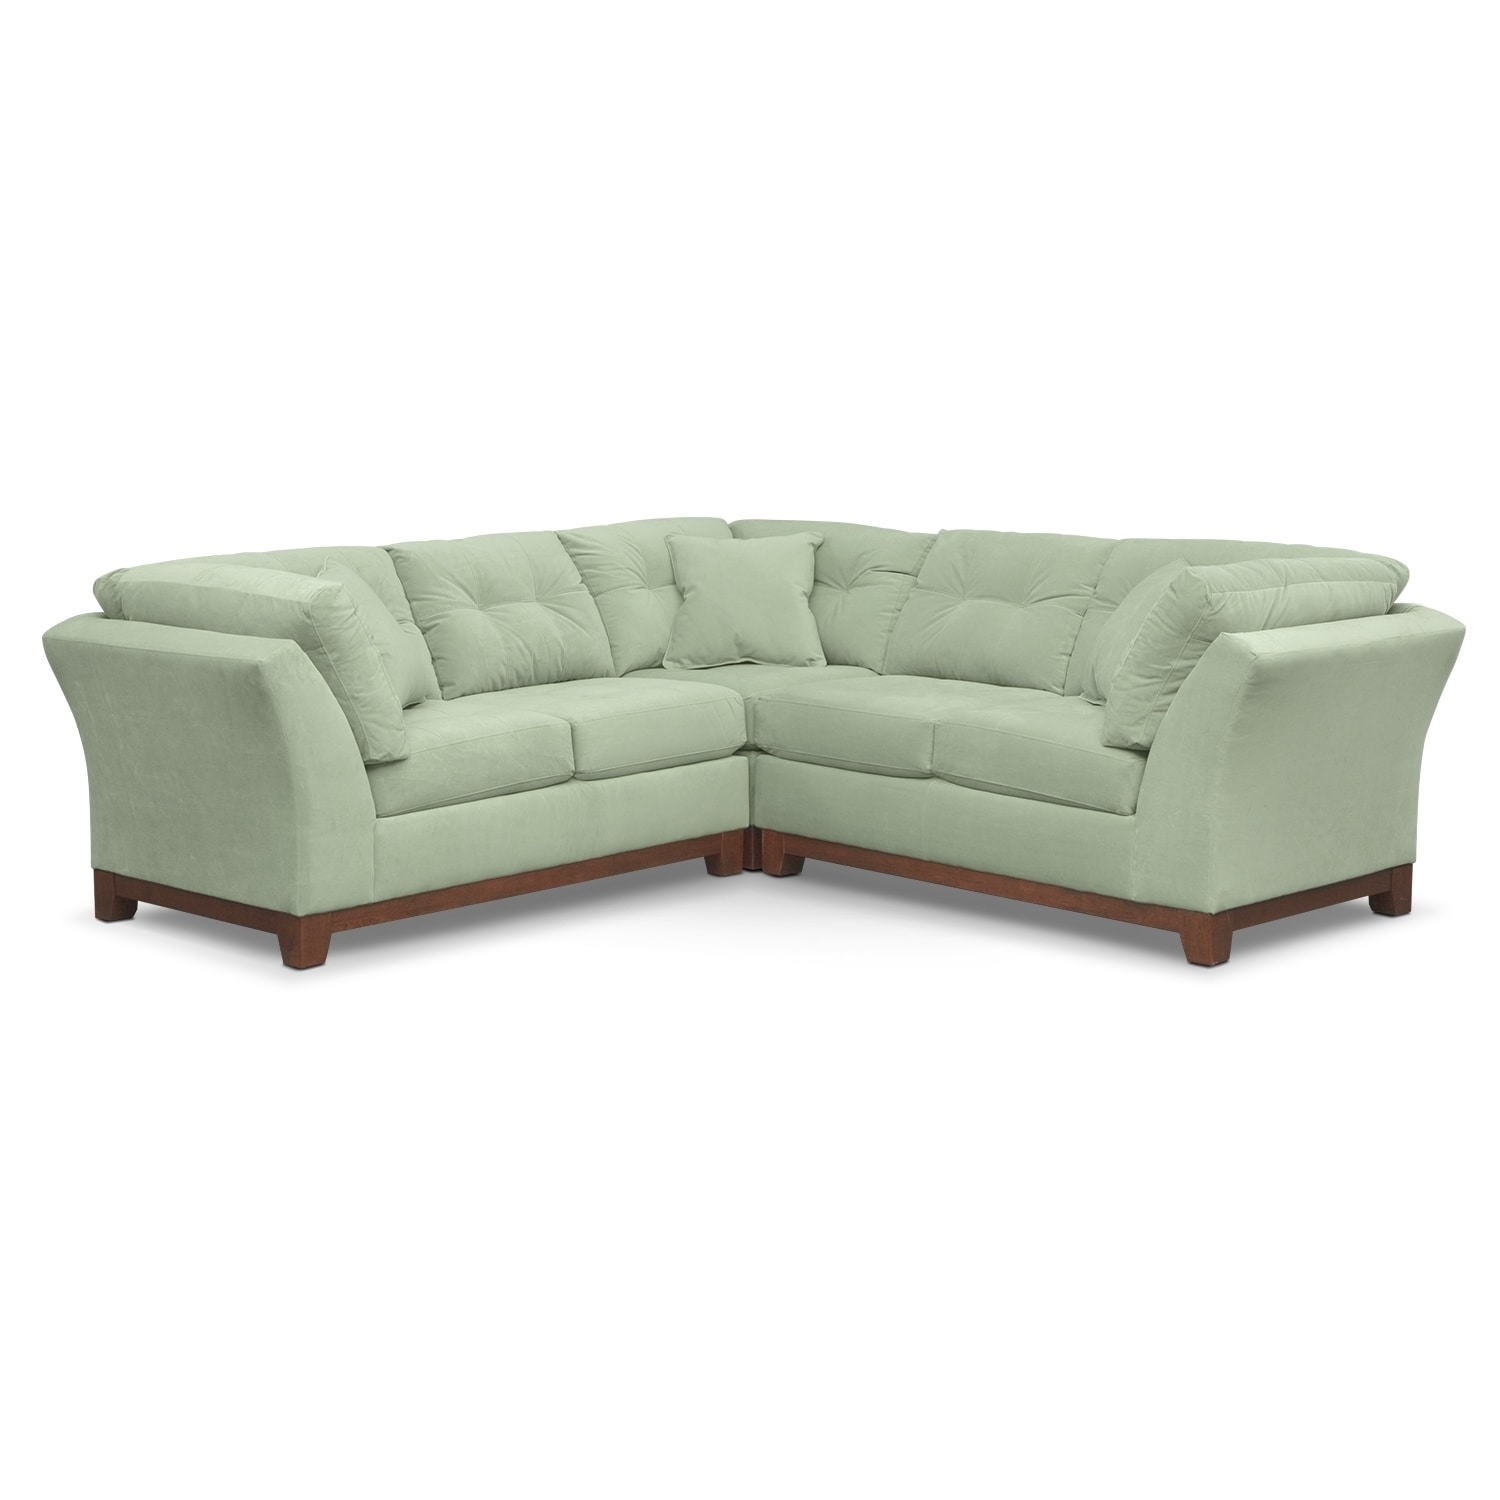 Solace 3-Piece Sectional - Spa